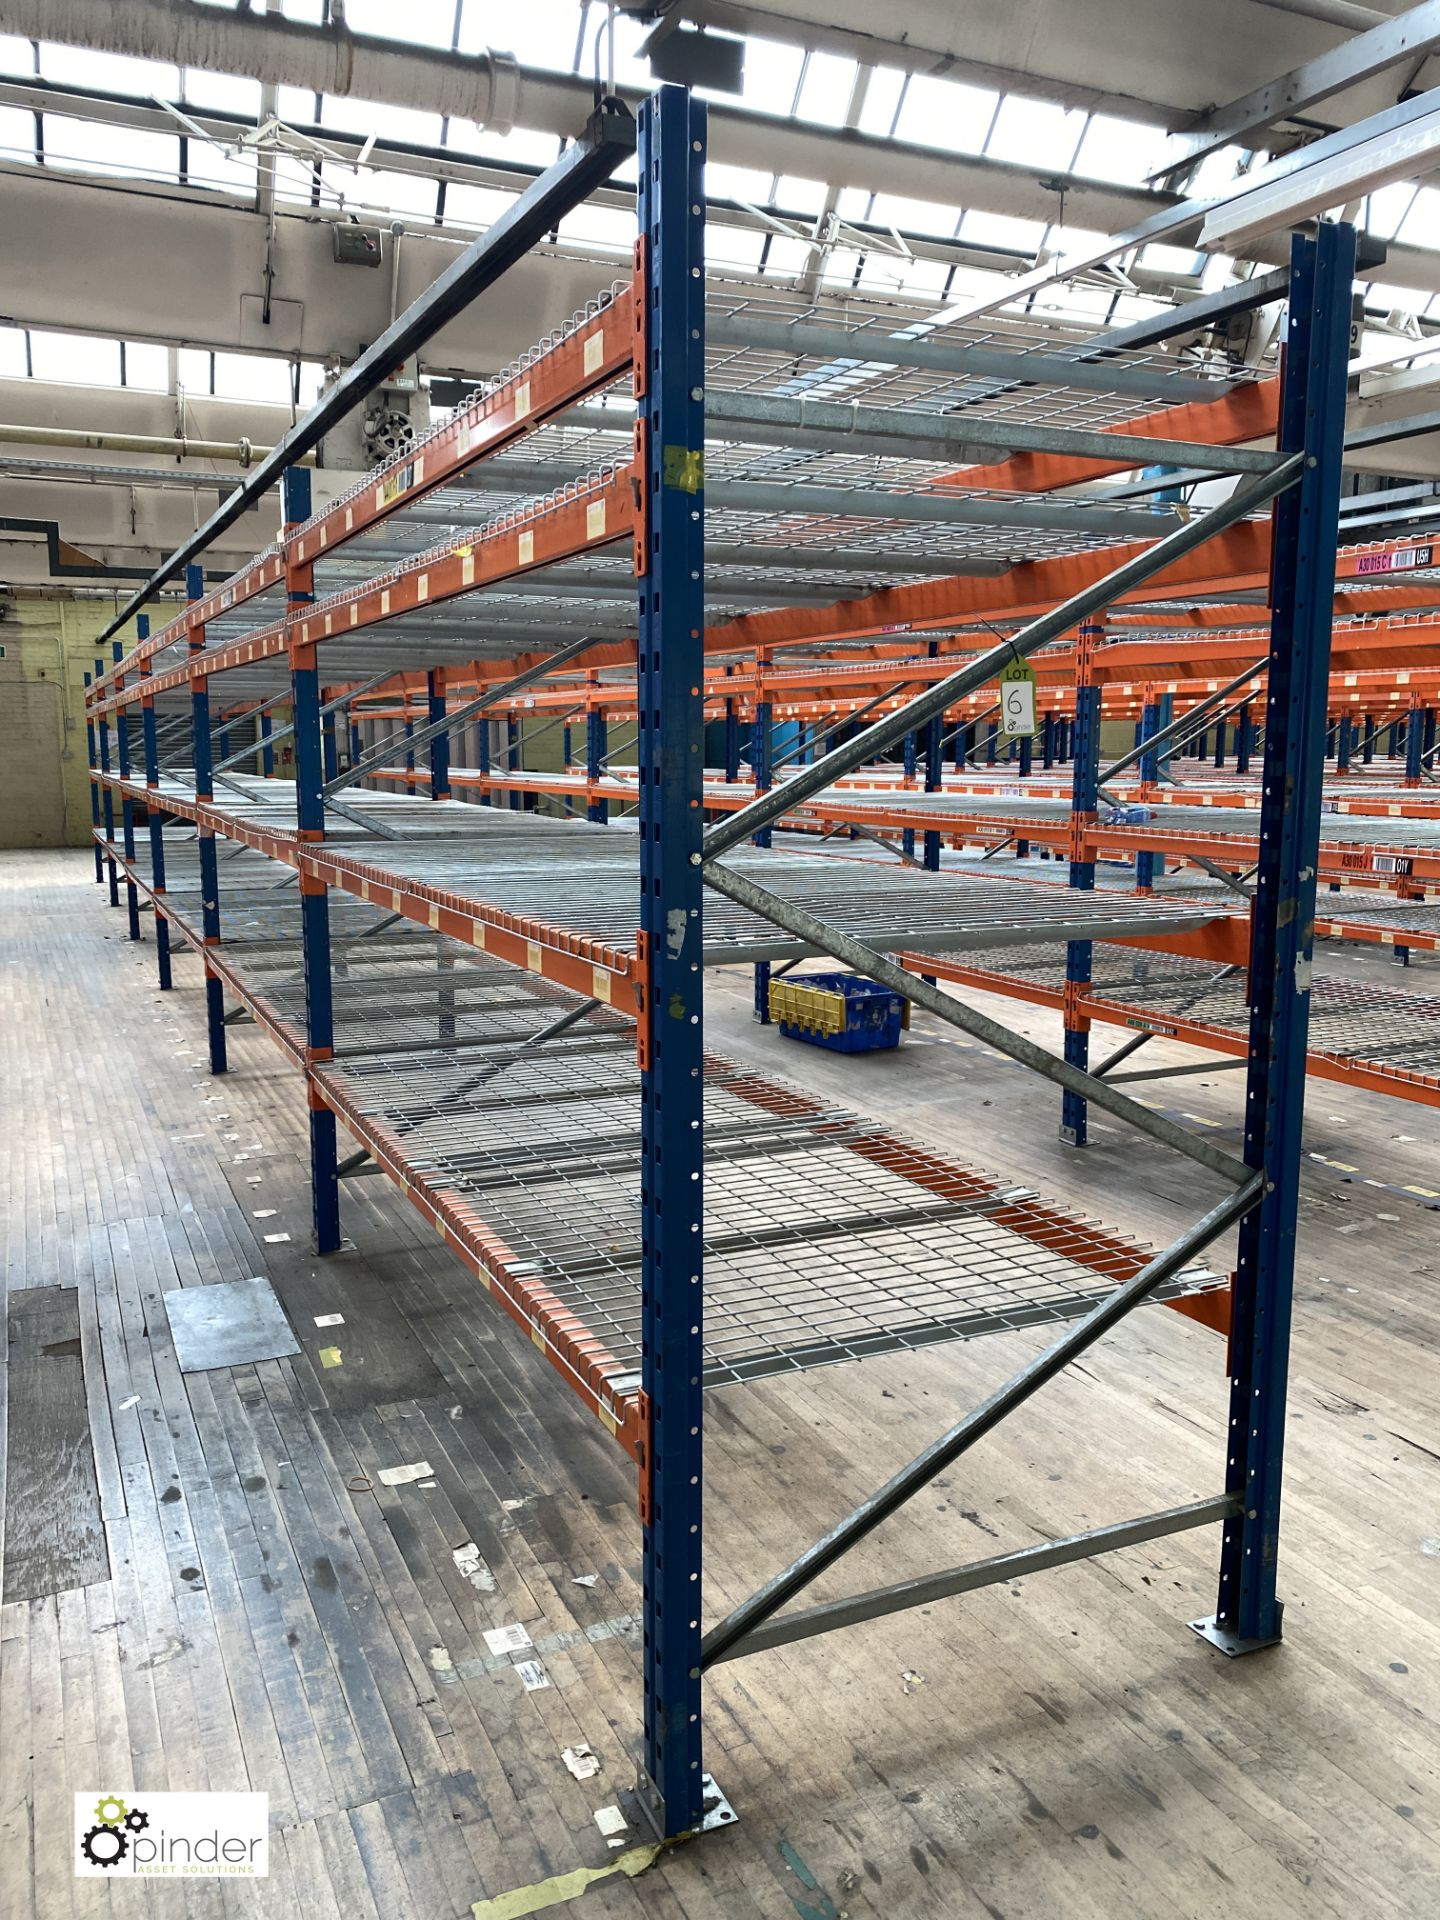 6 bays PSS 2K85 16 boltless Stock Racking, comprising 7 uprights 2400mm x 1200mm, 48 beams 2700mm,